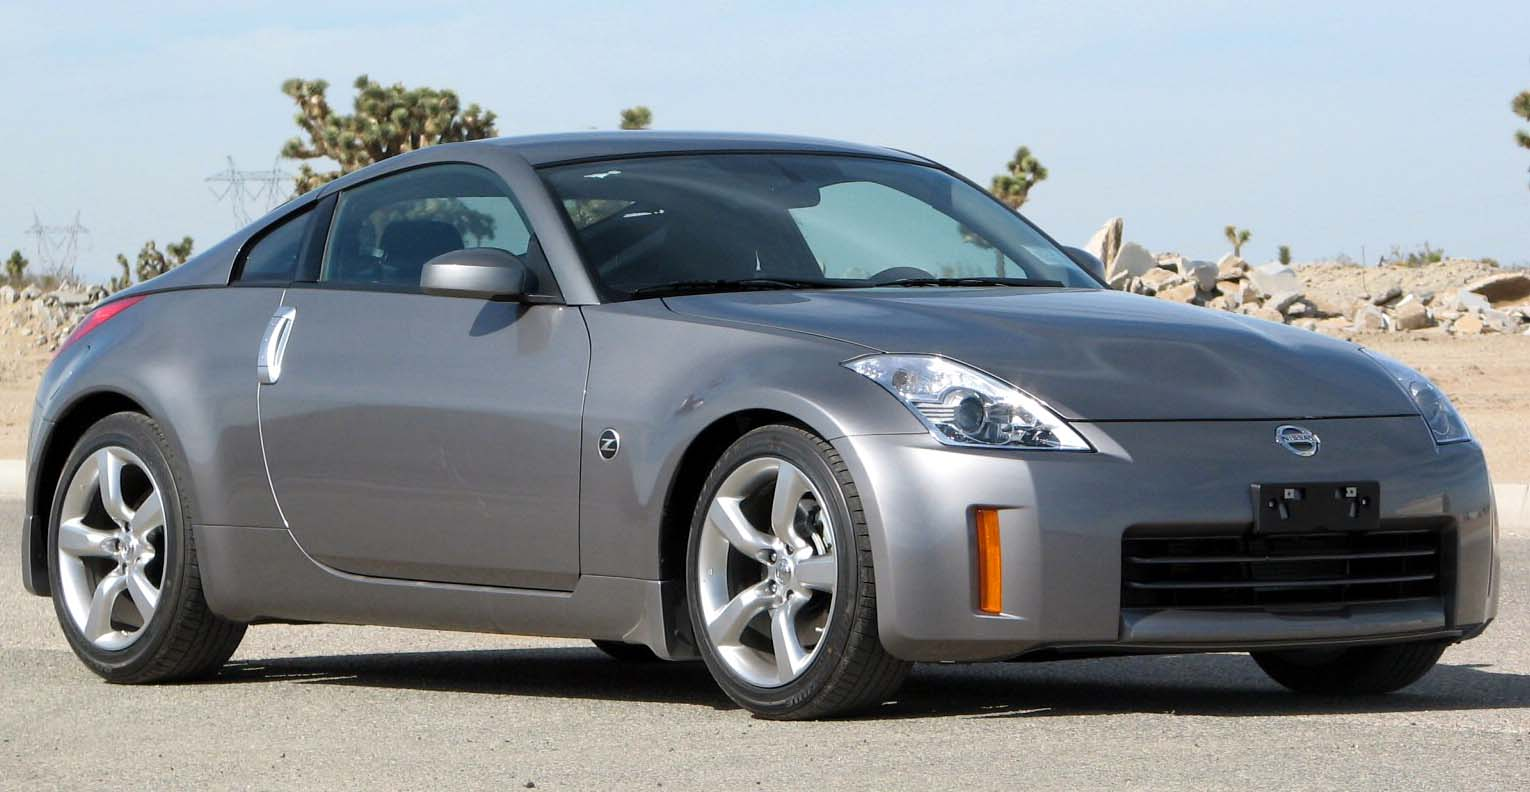 Nissan 350z Roadster (z33) 2004 Pictures #3